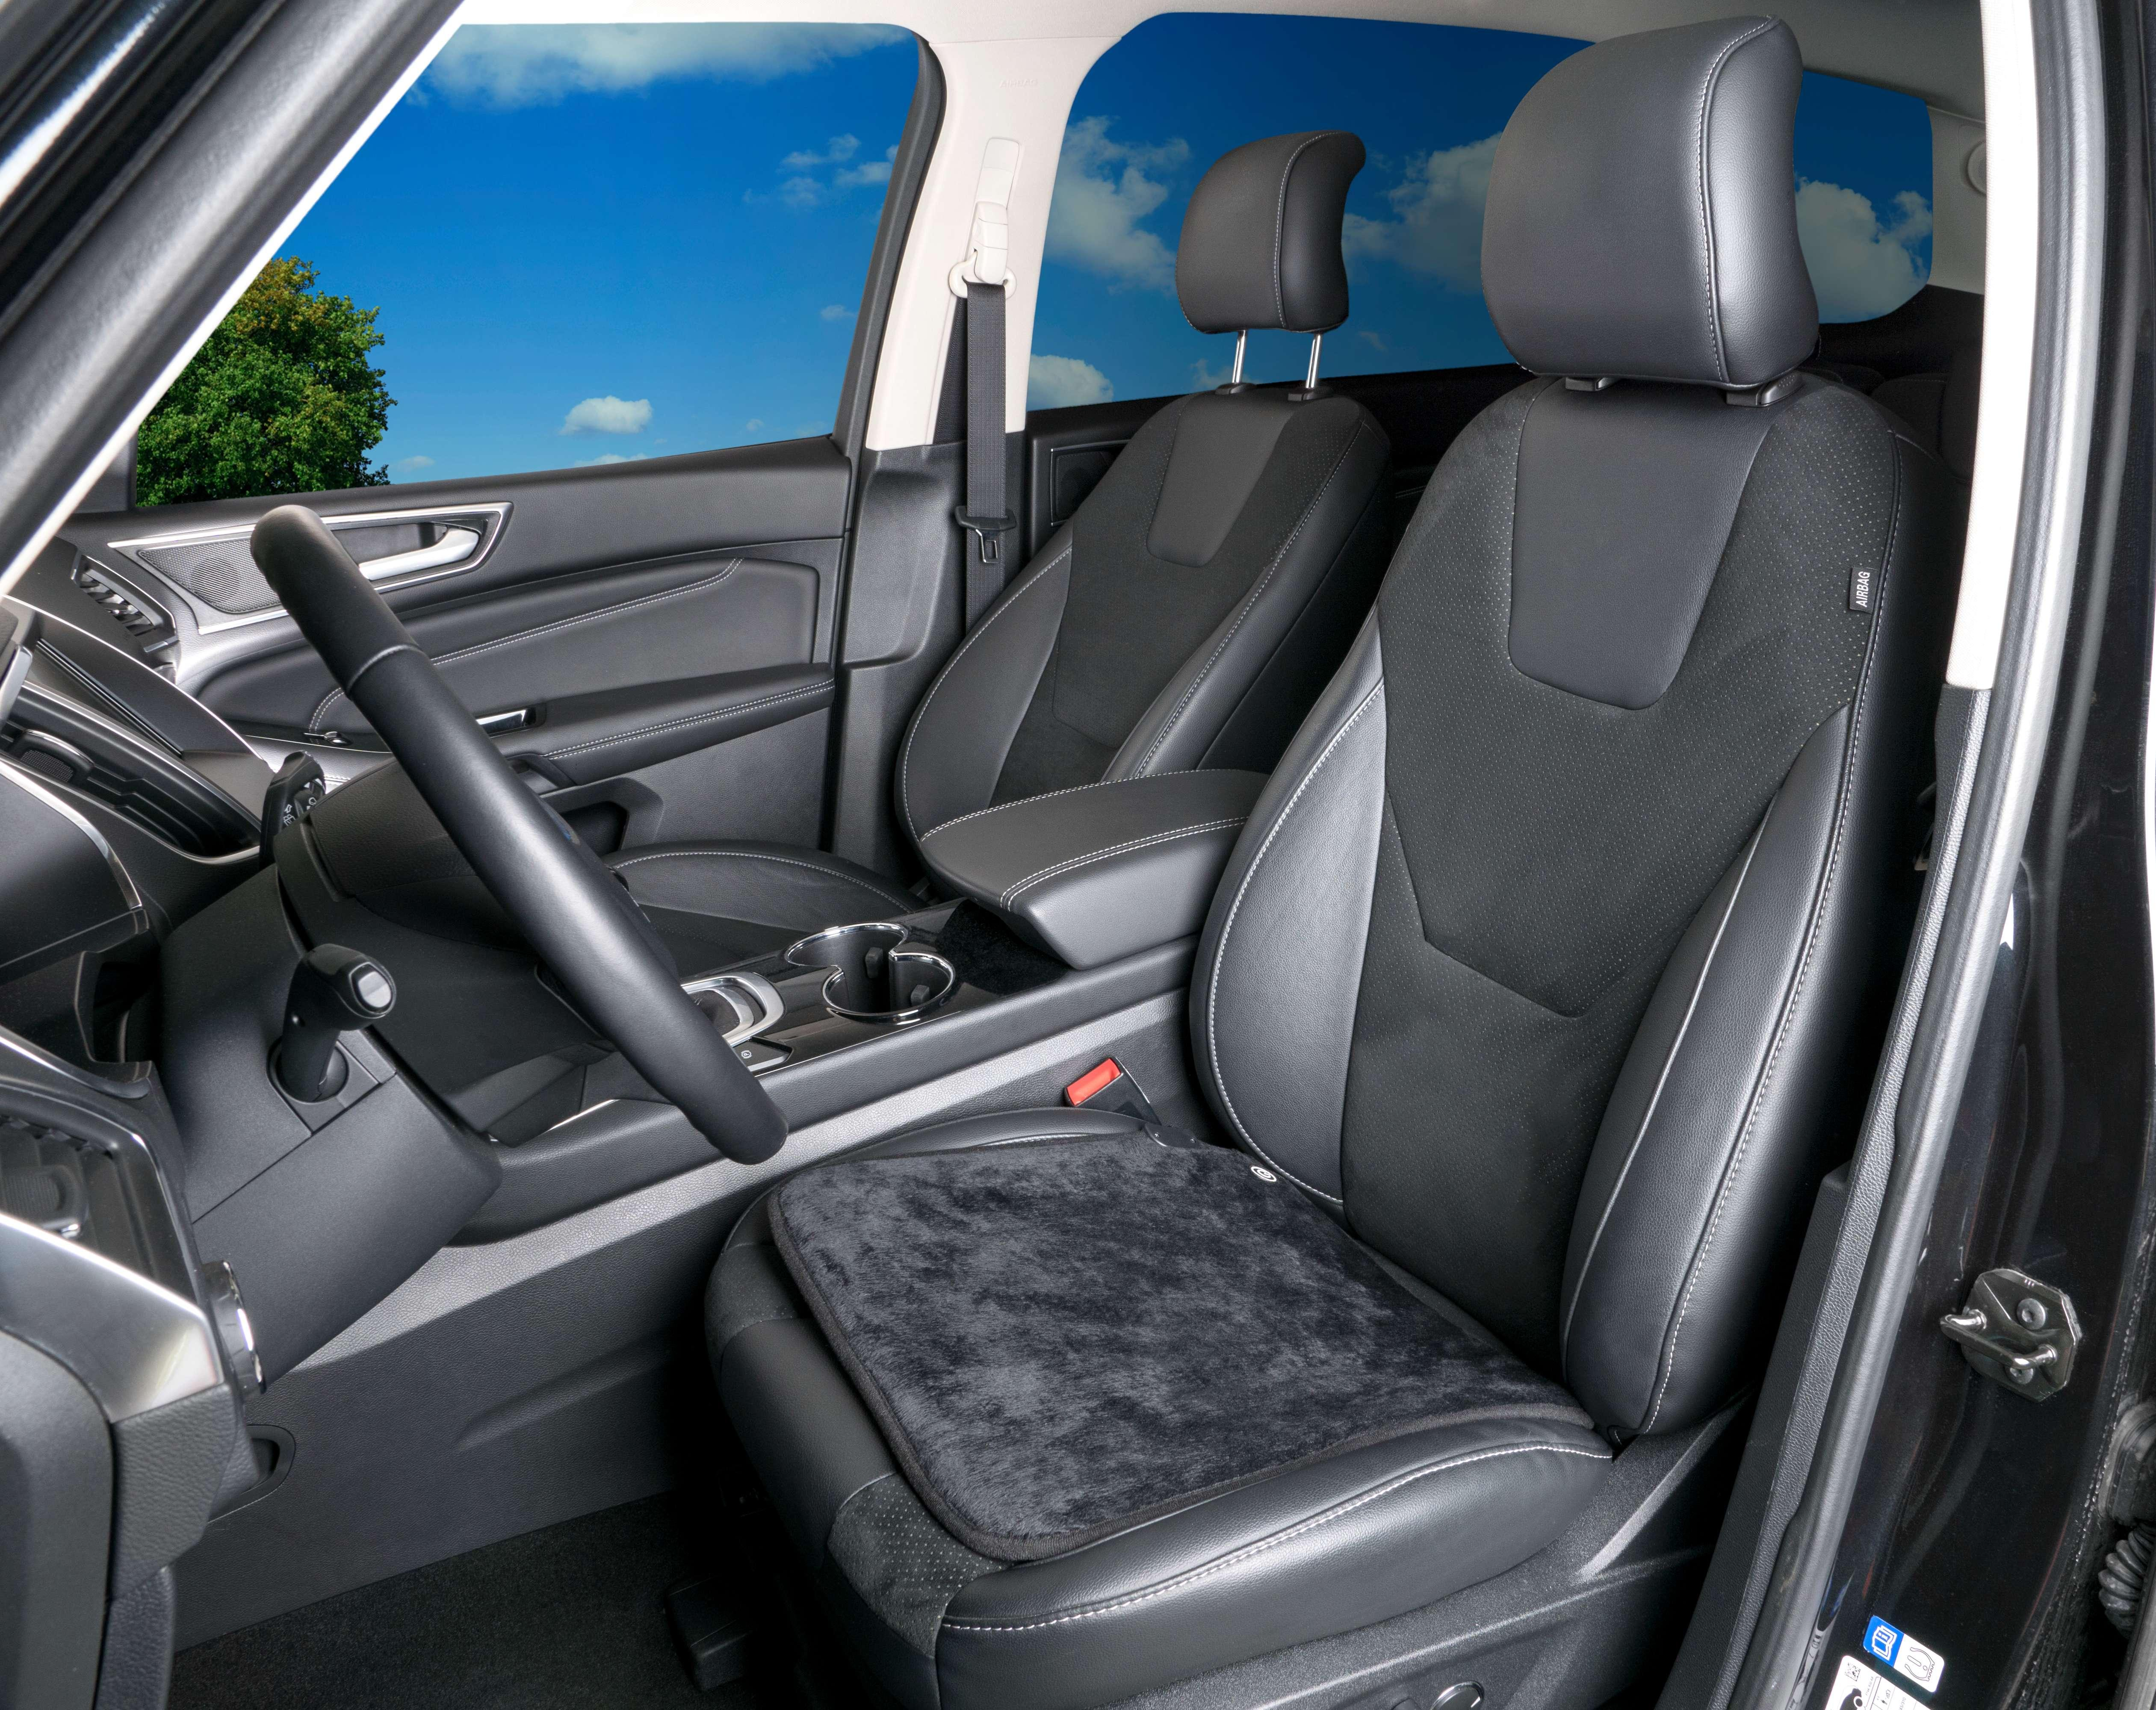 Heated Seat Cover WALSER 16648 rating